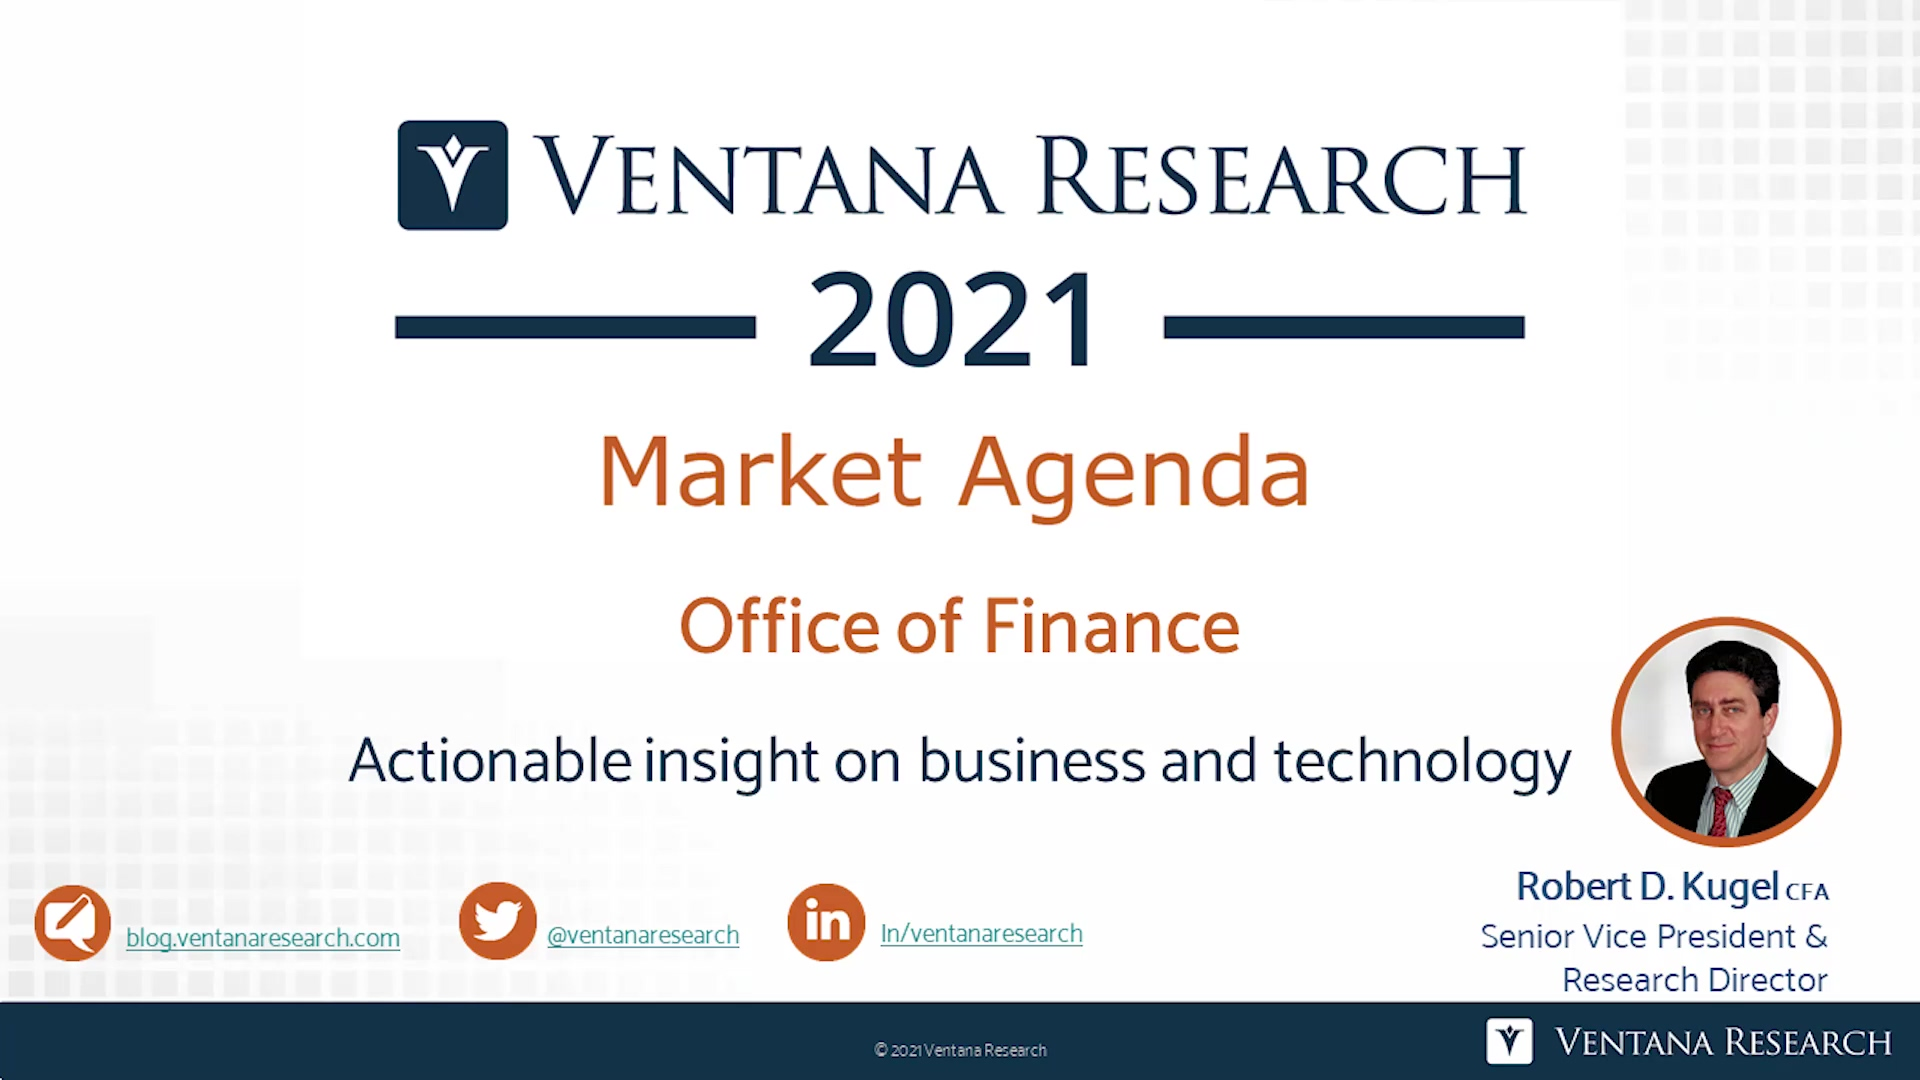 Ventana Research 2021 Market Agenda for OOF